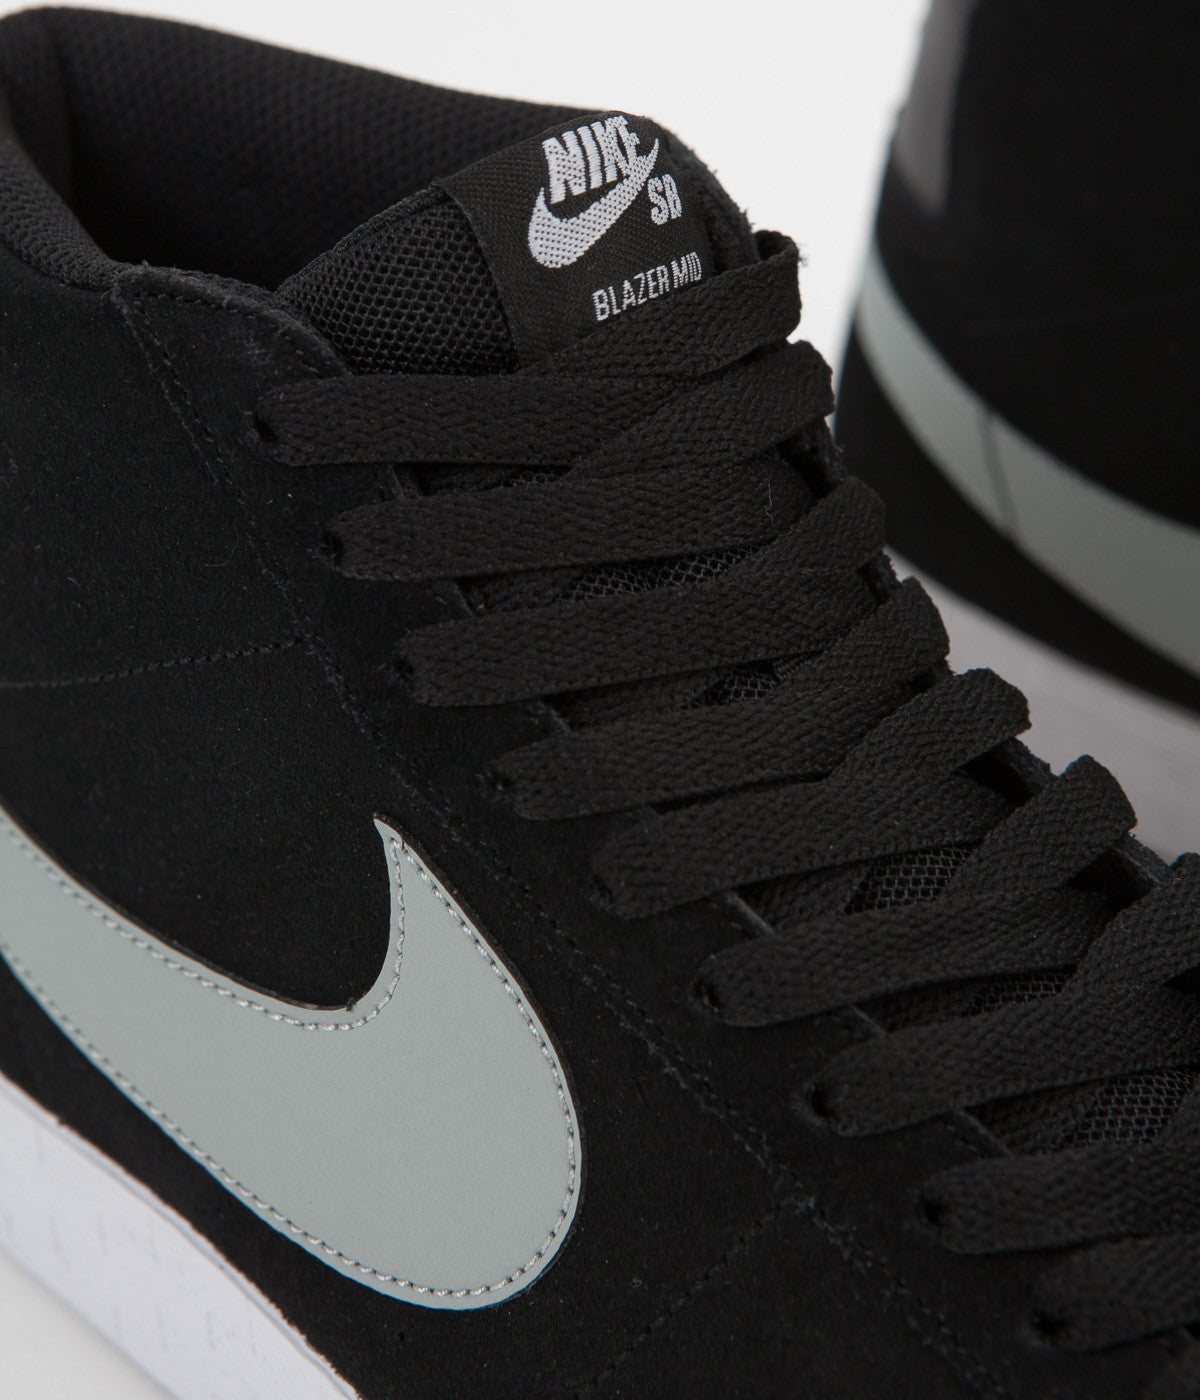 d6d90e1c5cdf ... Nike SB Blazer Premium SE Shoes - Black   Base Grey - White ...